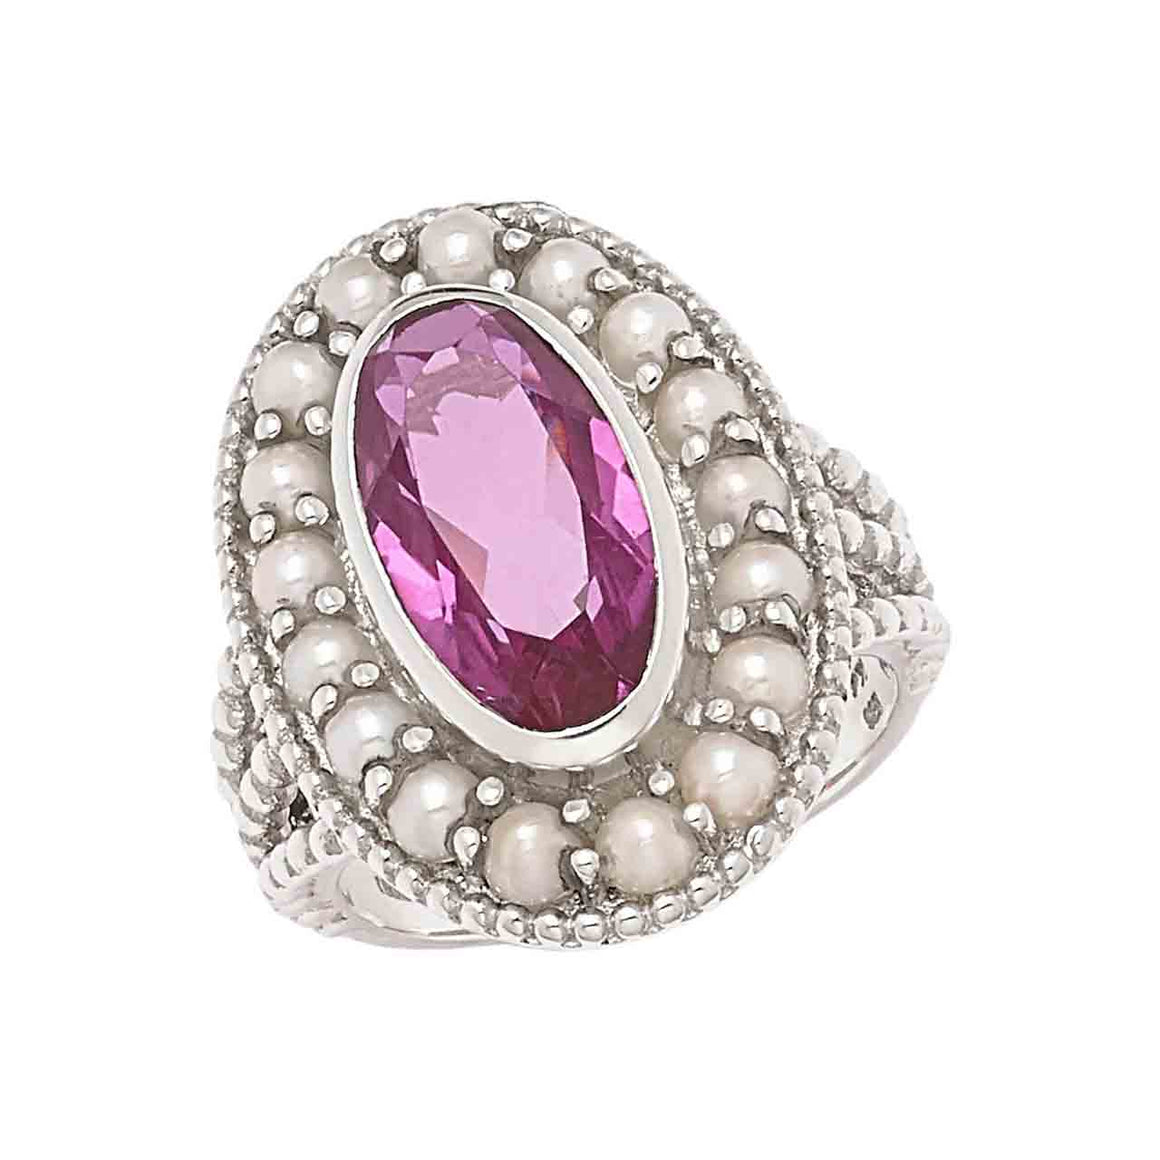 Kunzite Quartz and Feshwater Pearl Ring